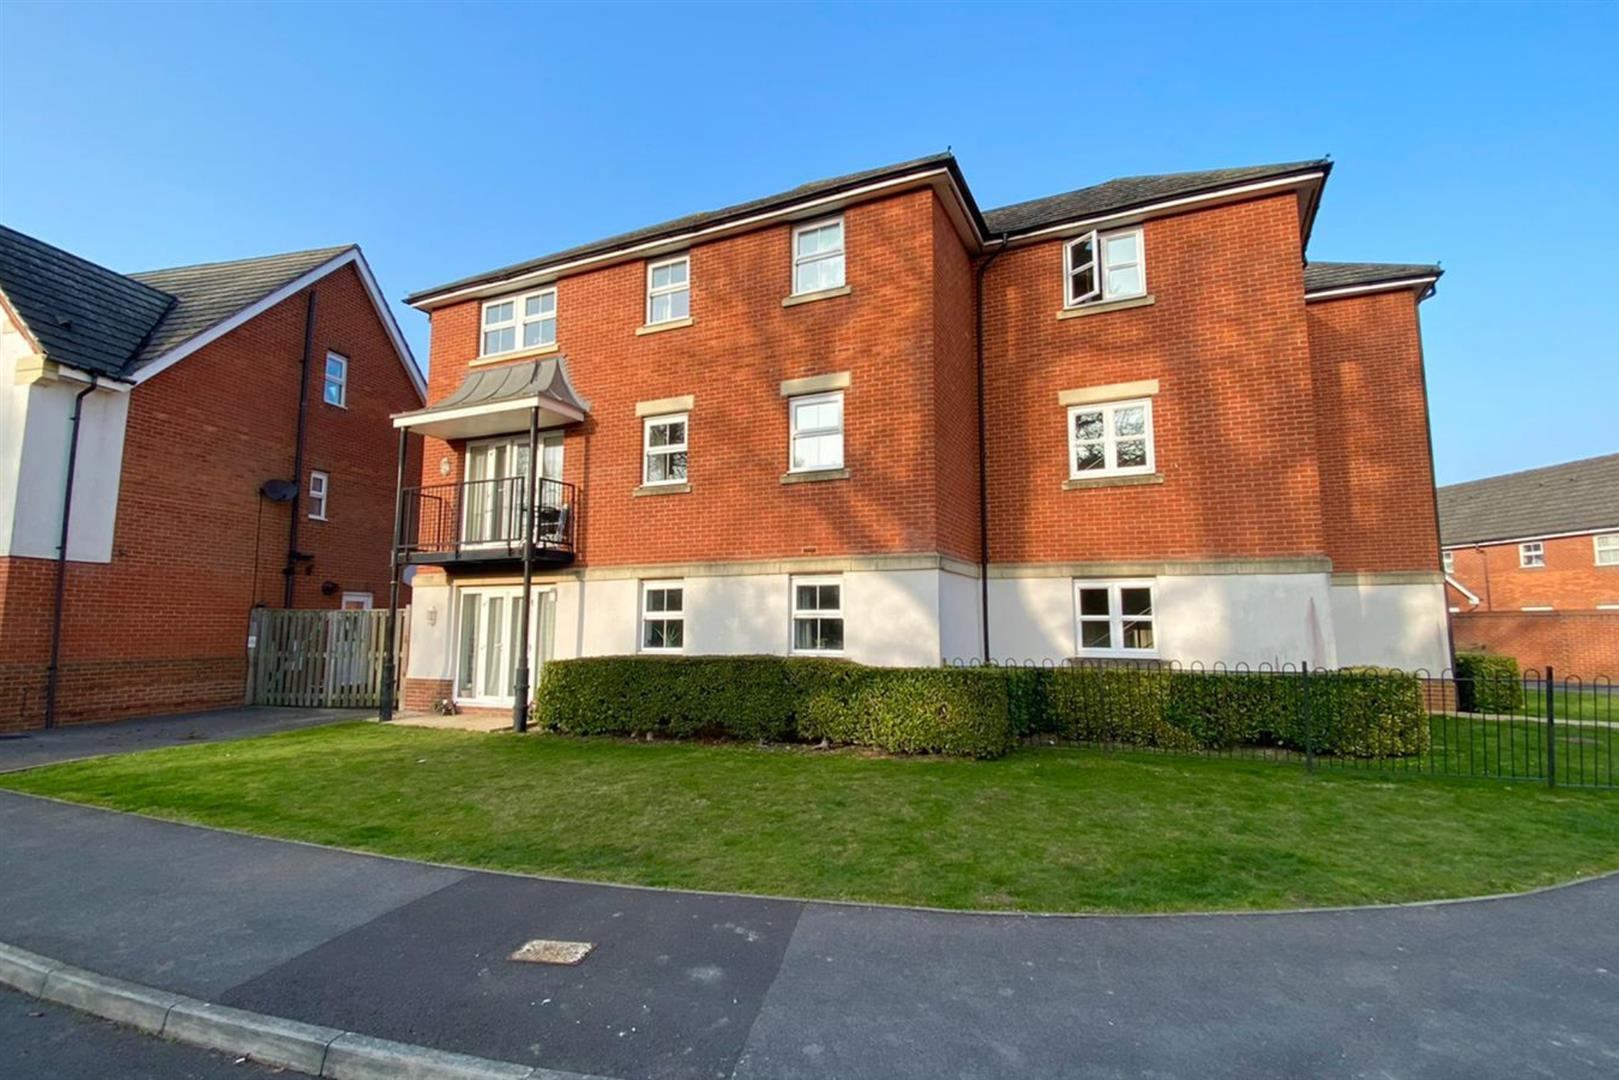 2 bed flat for sale in Shinfield, RG2